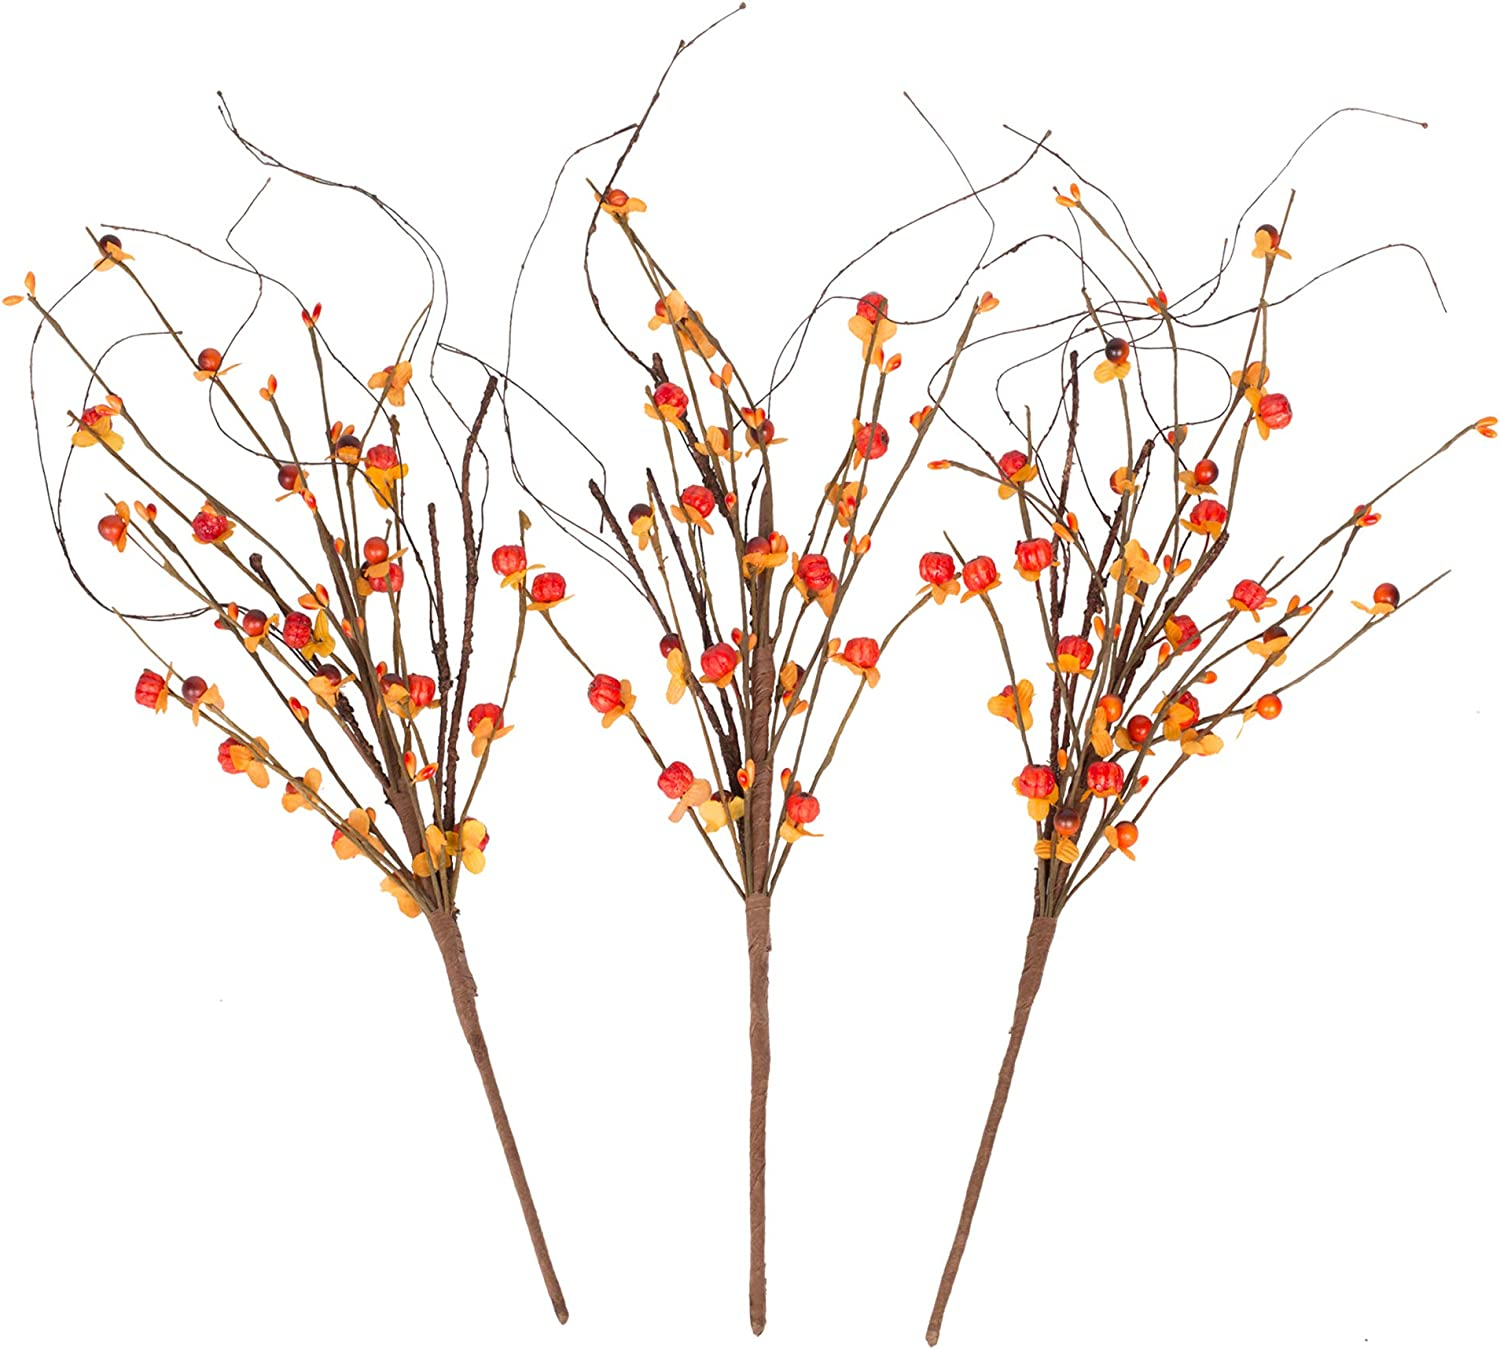 VGIA 18Inch3 PacksRed Berry PicksArtificialRedBerry BranchesFallDecorations HomeDecor